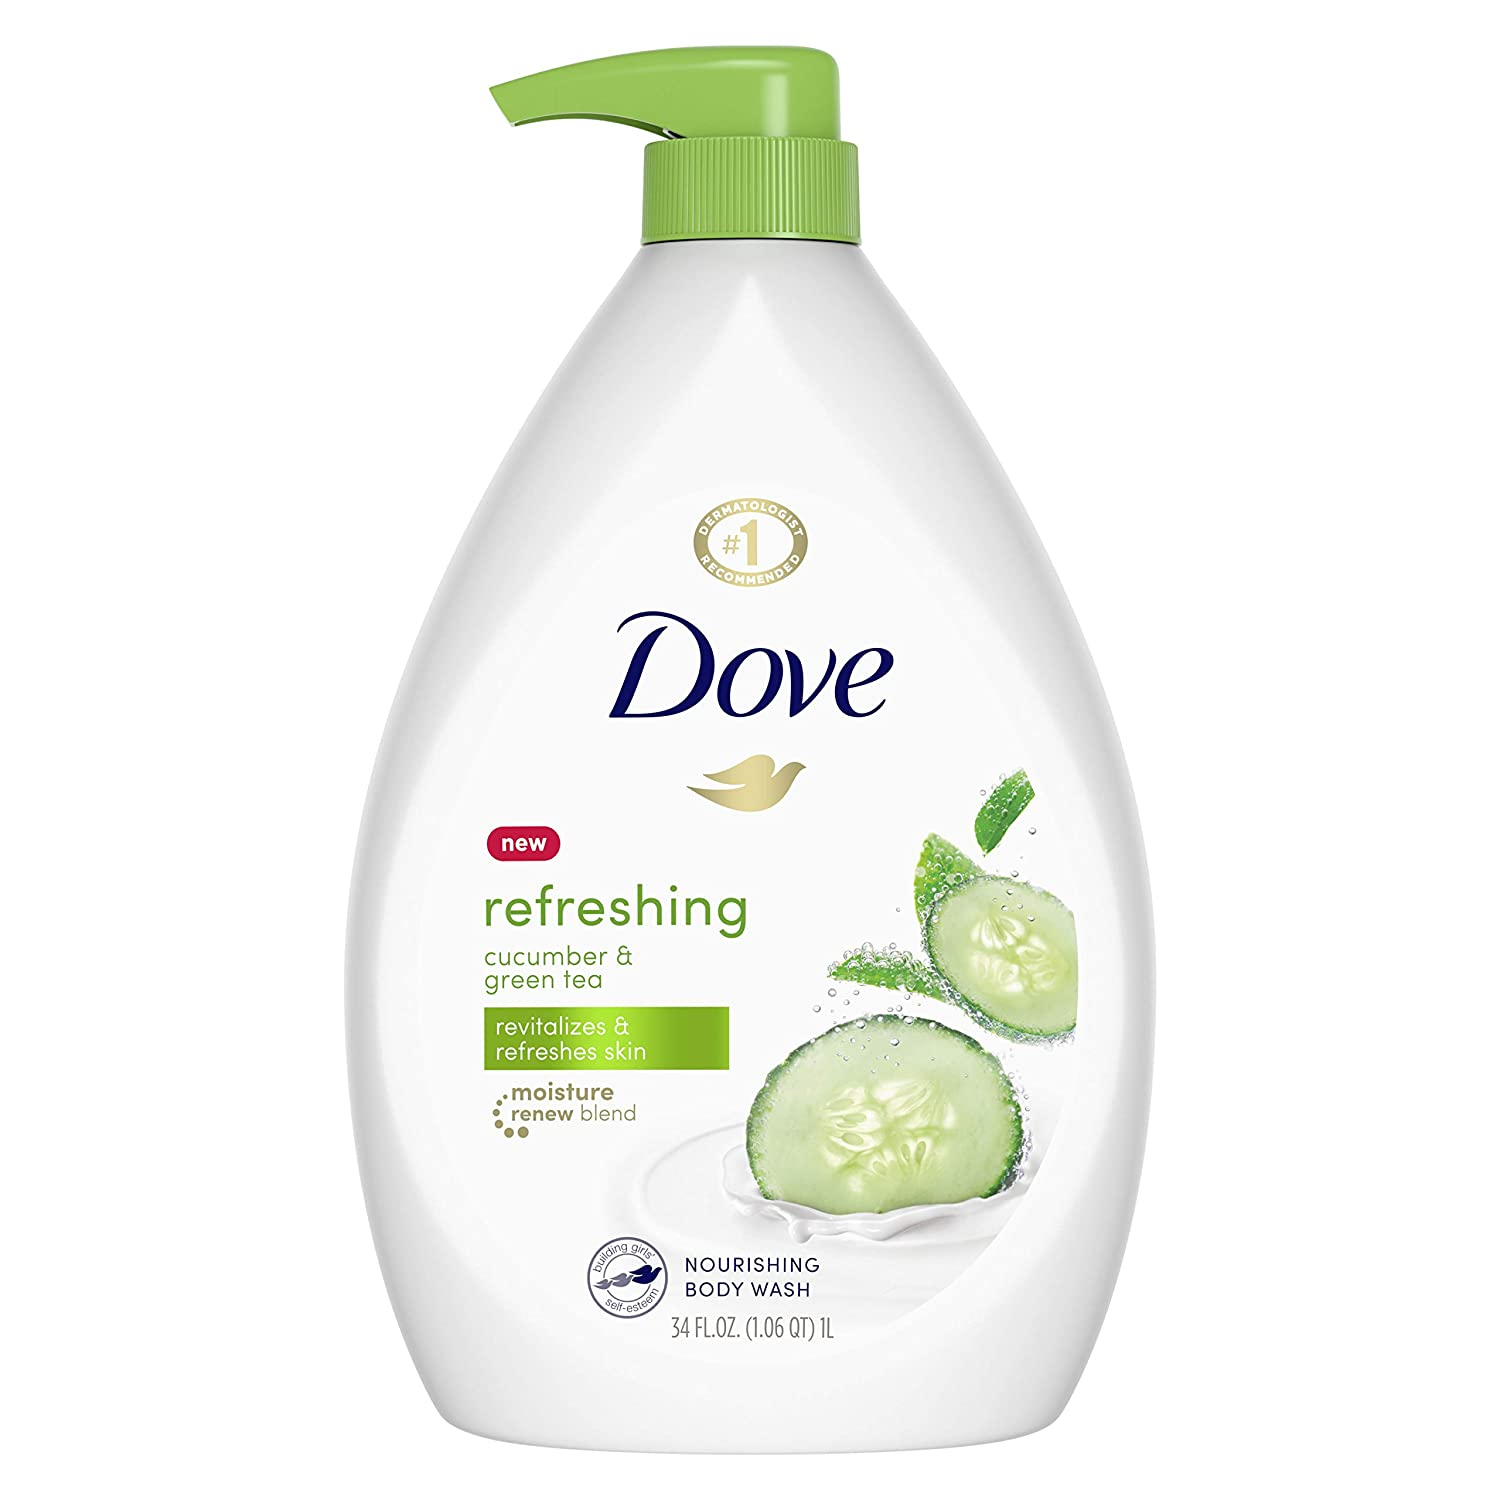 Amazon Com Dove Go Fresh Refreshing Body Wash With Pump Revitalizes And Refreshes Skin Cucumber And Green Tea Effectively Washes Away Bacteria While Nourishing Your Skin 34 Oz Beauty